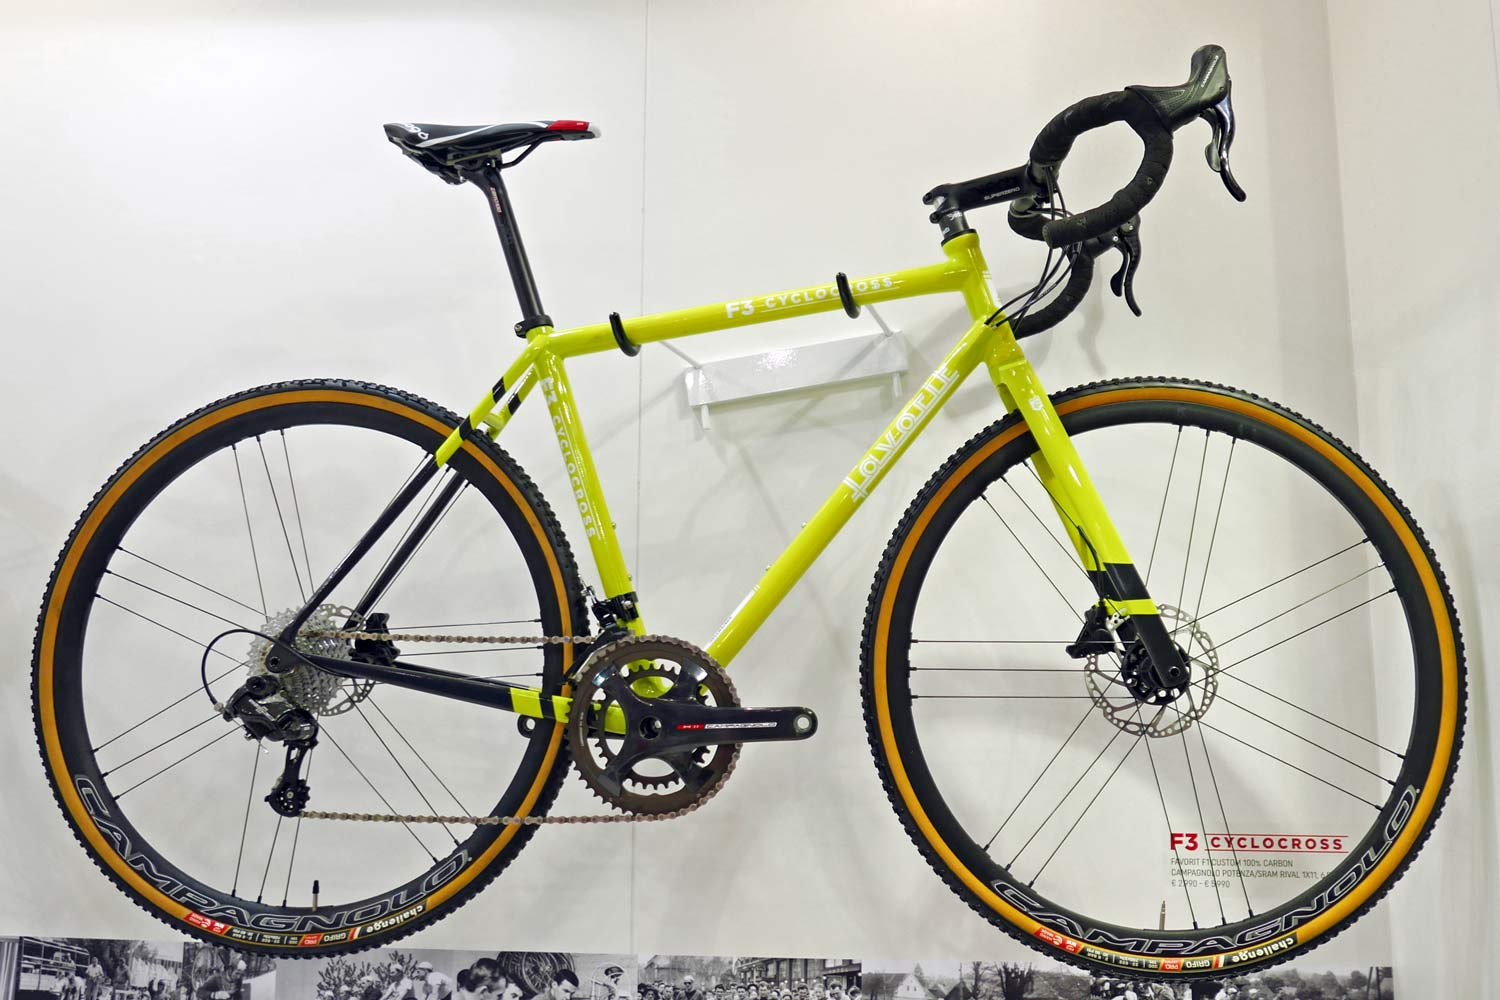 Favorit F3 Cyclocross custom carbon custom sizing custom geometry disc brake carbon cyclocross bike Campagnolo H11 complete